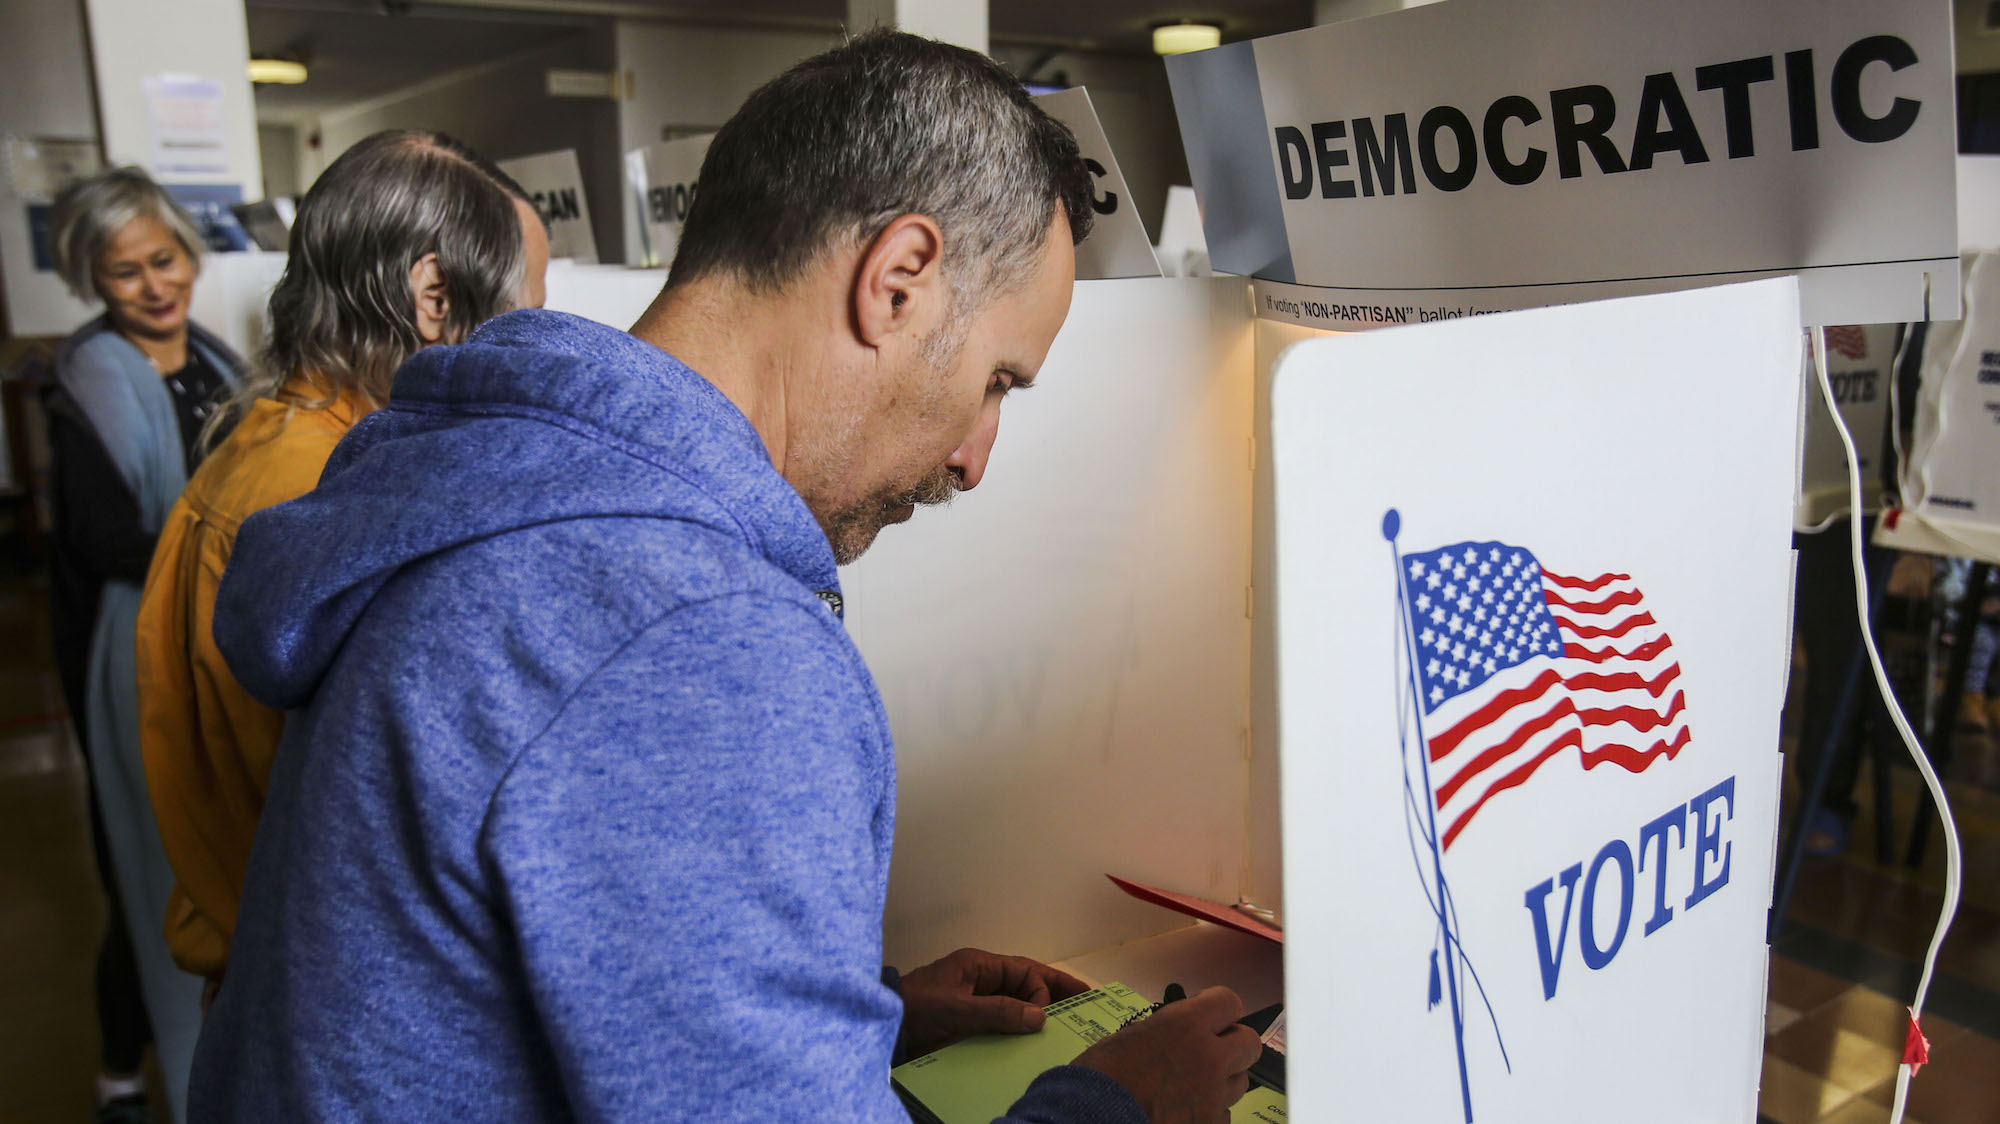 California Moves Presidential Primary Election to March